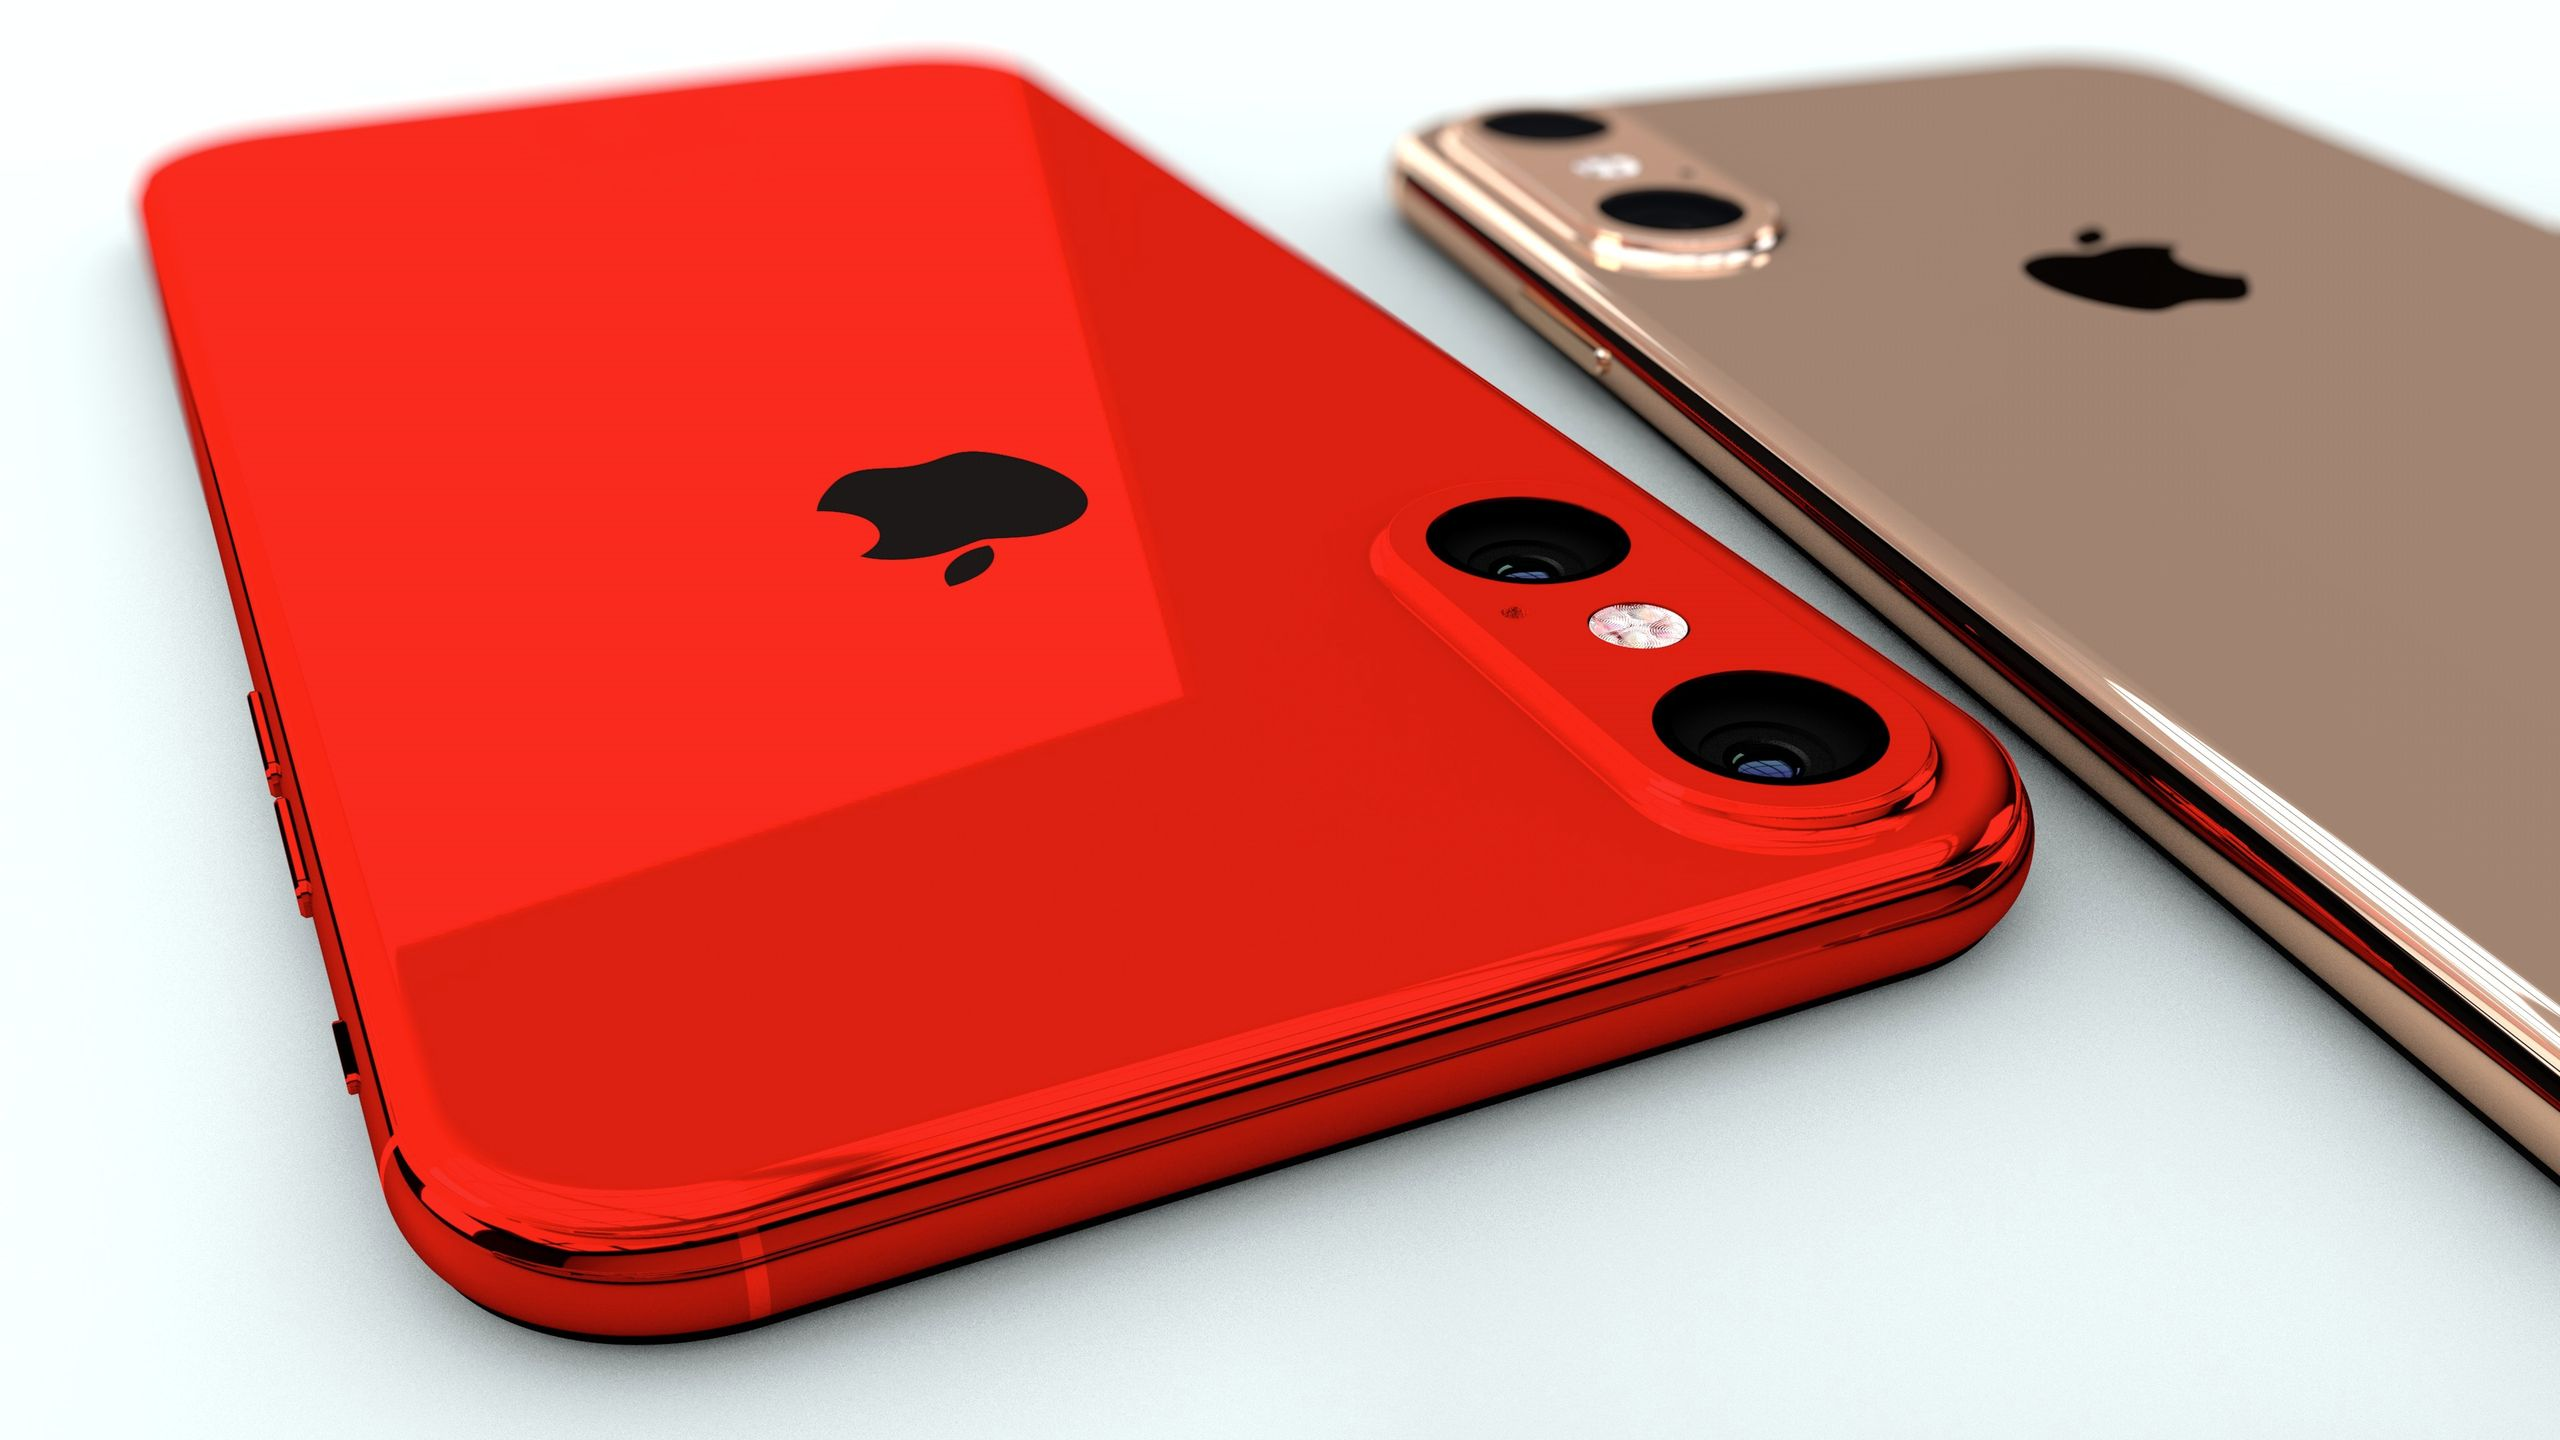 Iphone Xi Concept Images 2019 9